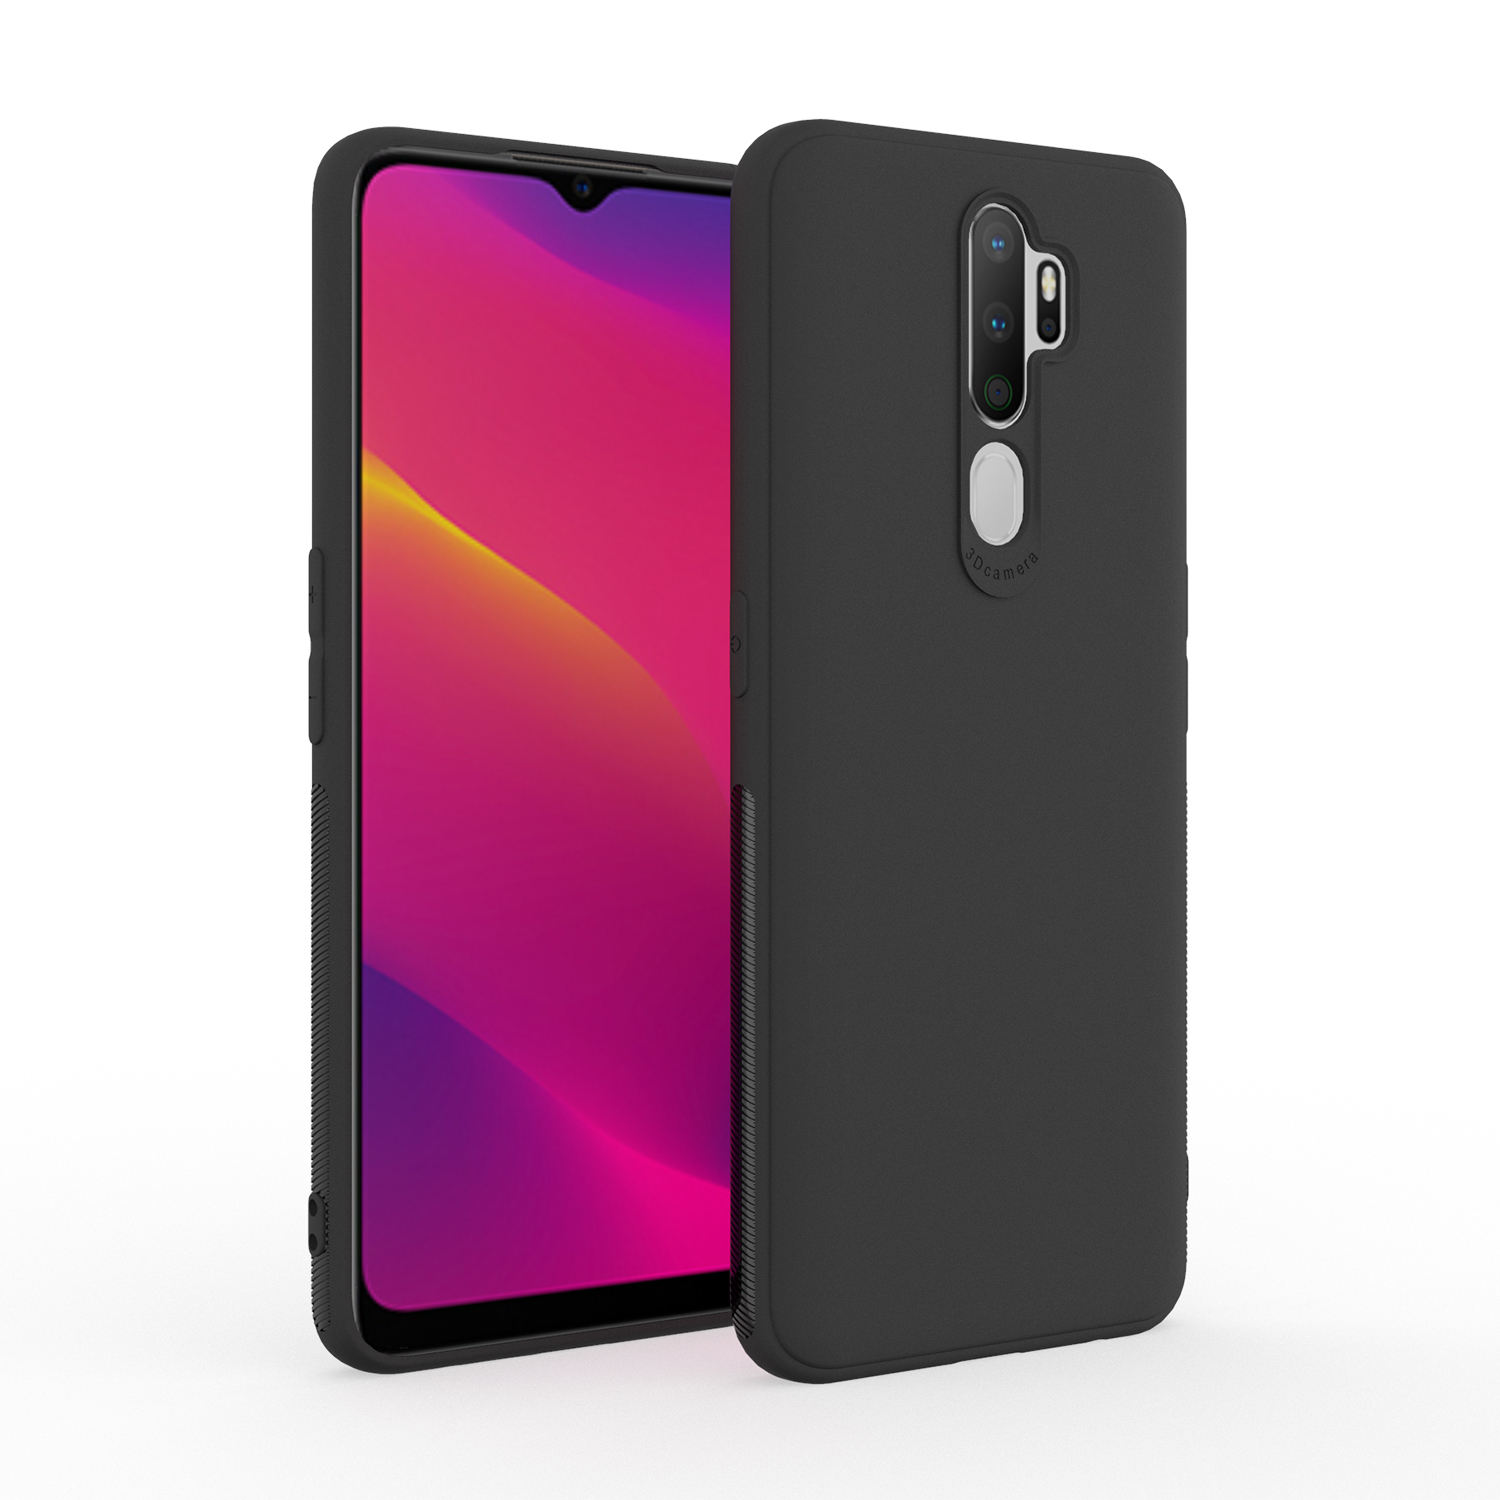 Groothandel Prijs <span class=keywords><strong>Mobiele</strong></span> <span class=keywords><strong>Telefoon</strong></span> Cover Luxe Flexibele Matted Tpu Voor Oppo A7 A8 A37 A91 A9 2020 Terug Beschermhoes